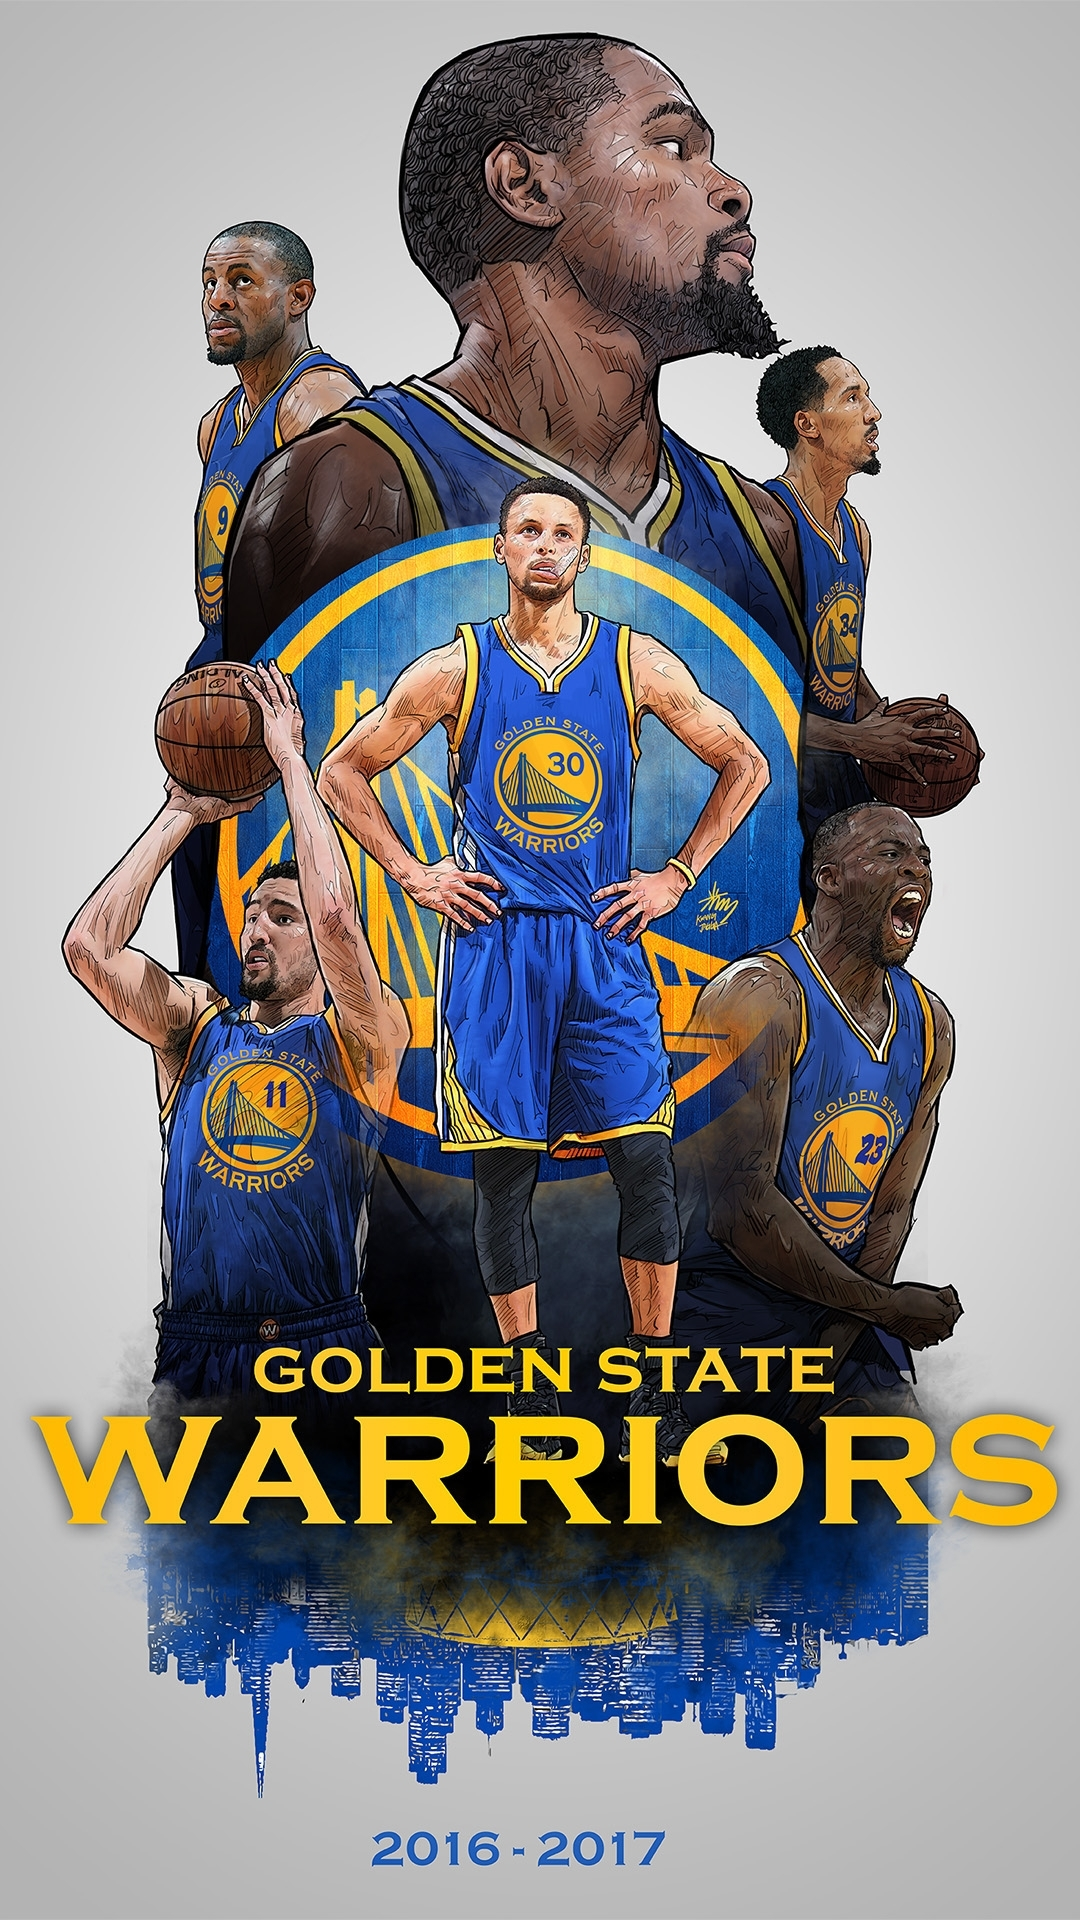 2016-2017 golden state warriors smartphone lock screen on behance